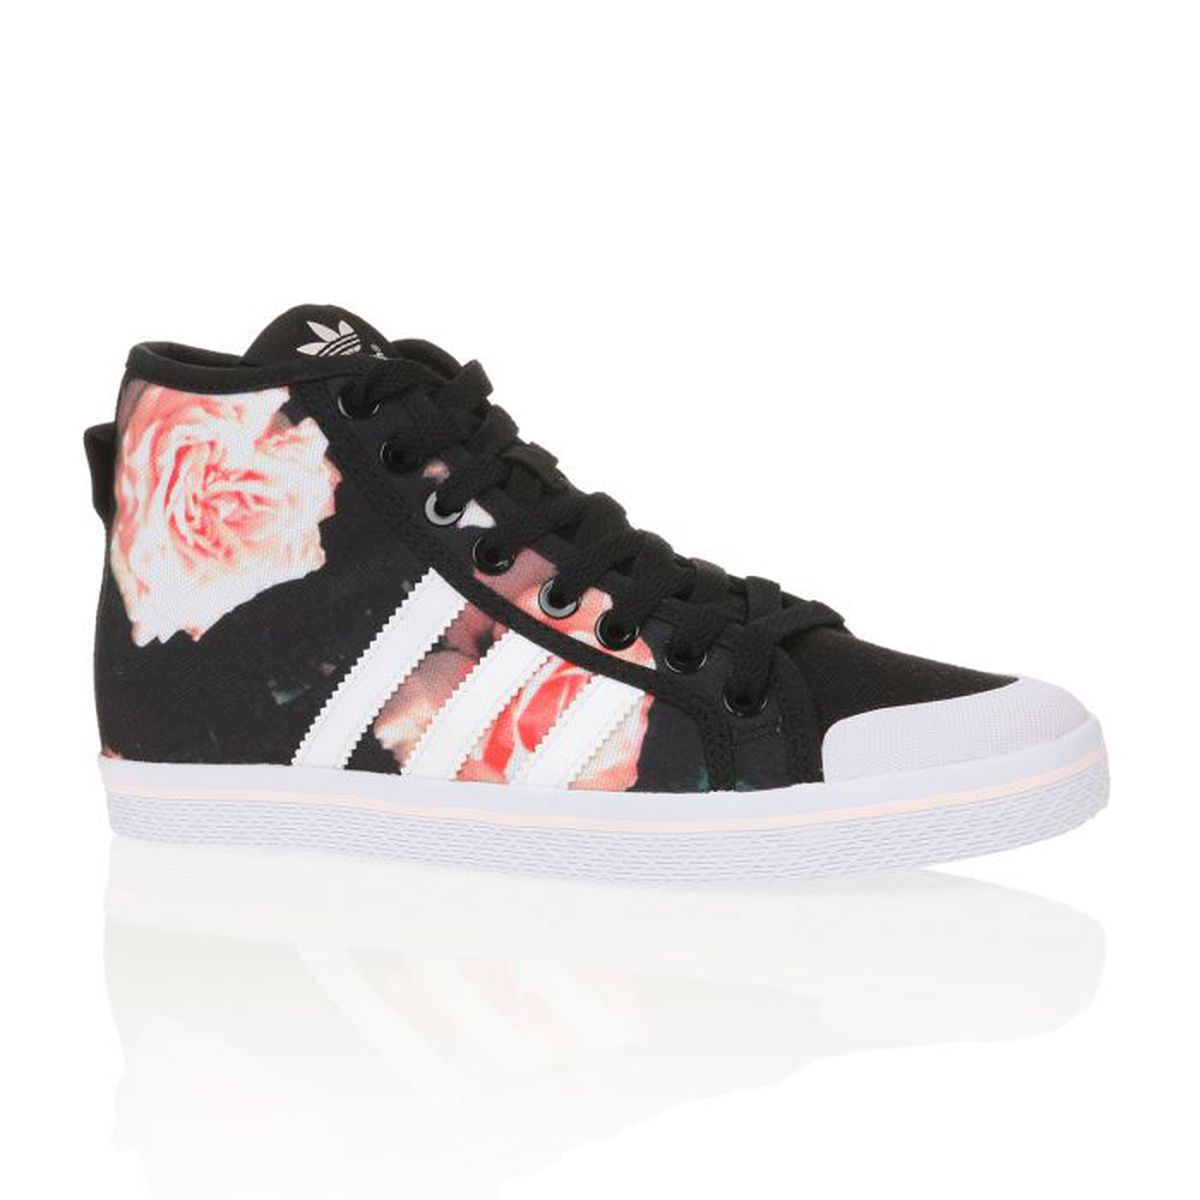 ADIDAS ORIGINALS Baskets Honey Stripes Mid Femme Noir ...